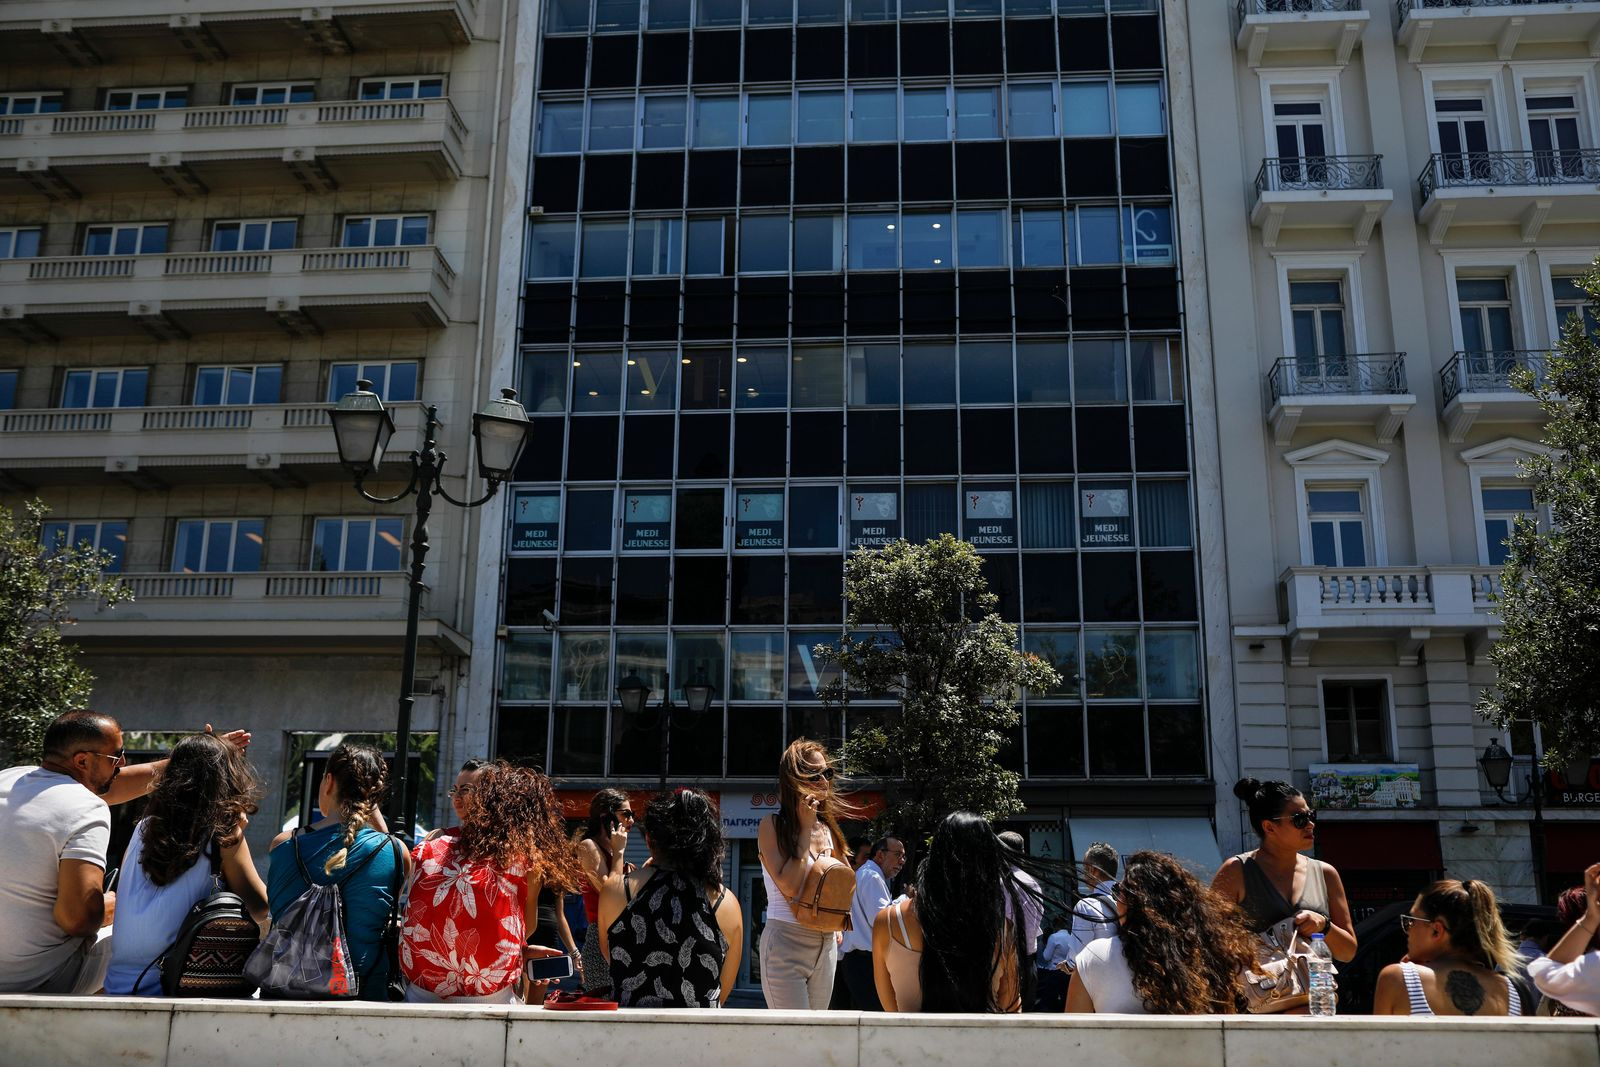 People speak on their phones as they stand outside the building they work in with the Greek Parliament in the background, after a strong earthquake hit near the Greek capital of Athens, Friday, July 19, 2019(AP Photo/Petros Giannakouris)